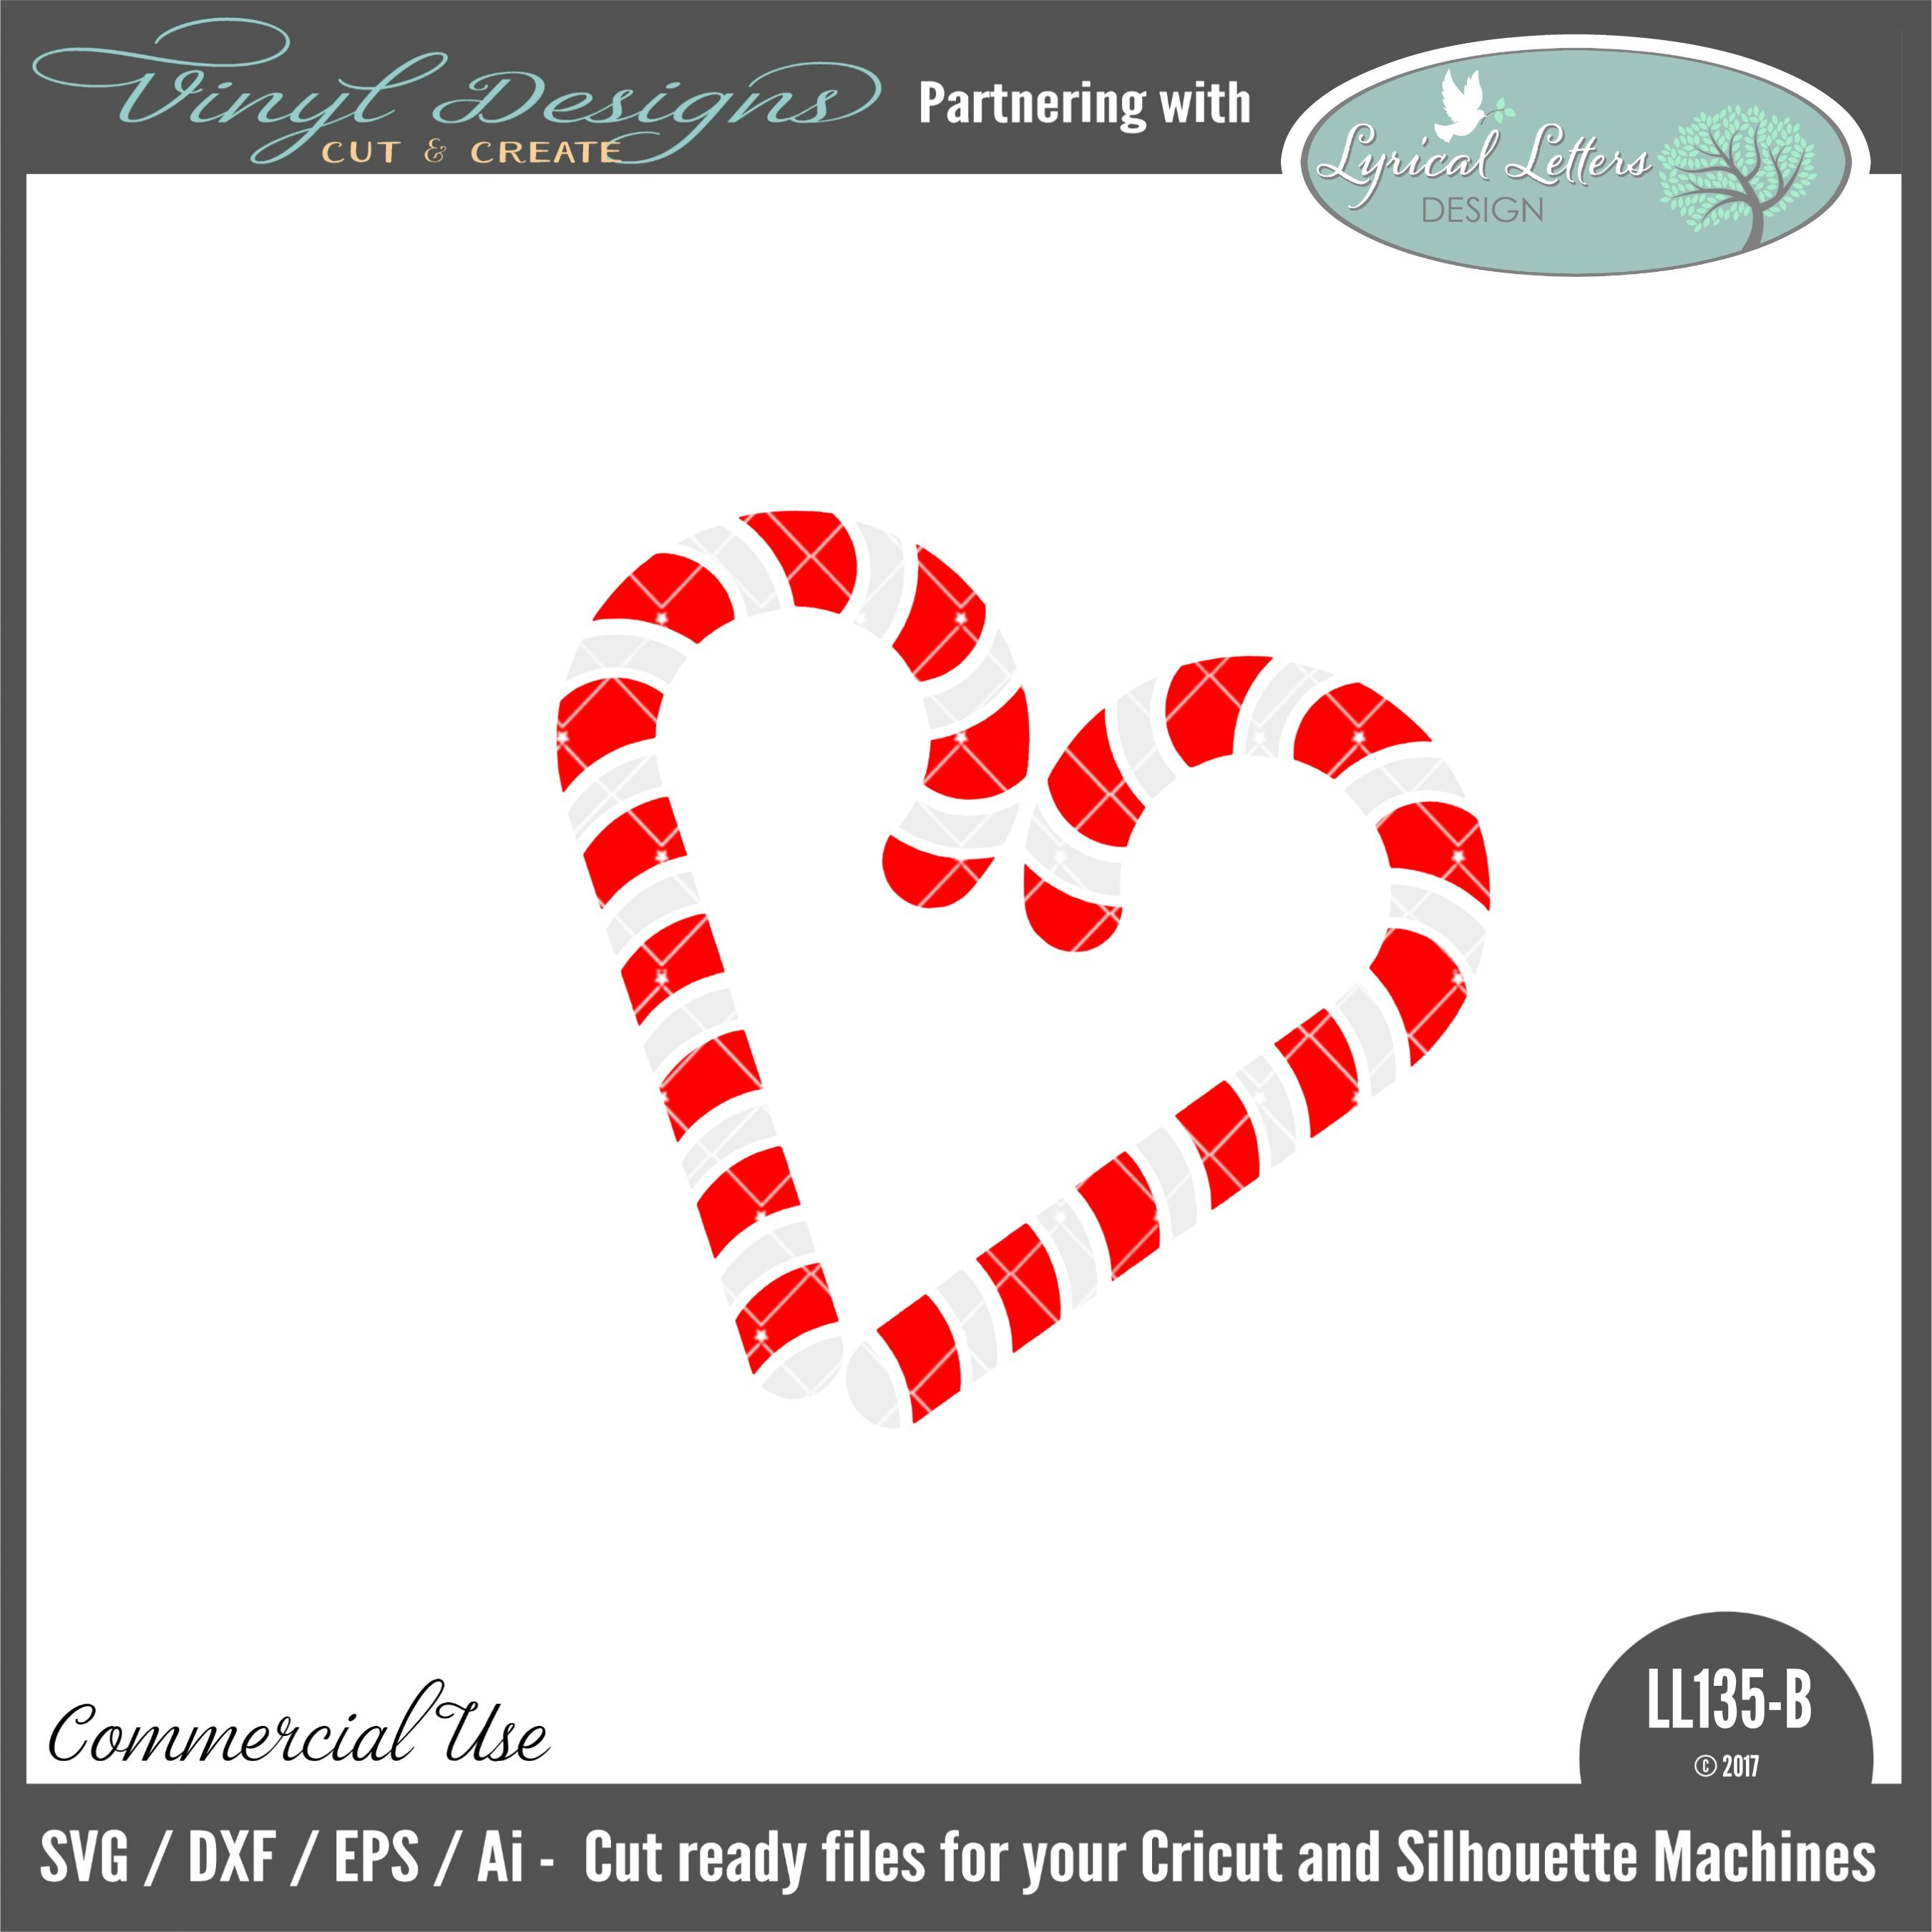 Ll135b Christmas Candy Cane Heart Sold By Lyrical Letters Designsmall Business Commercial Useavailable In S Christmas Candy Cane Christmas Candy Candy Cane